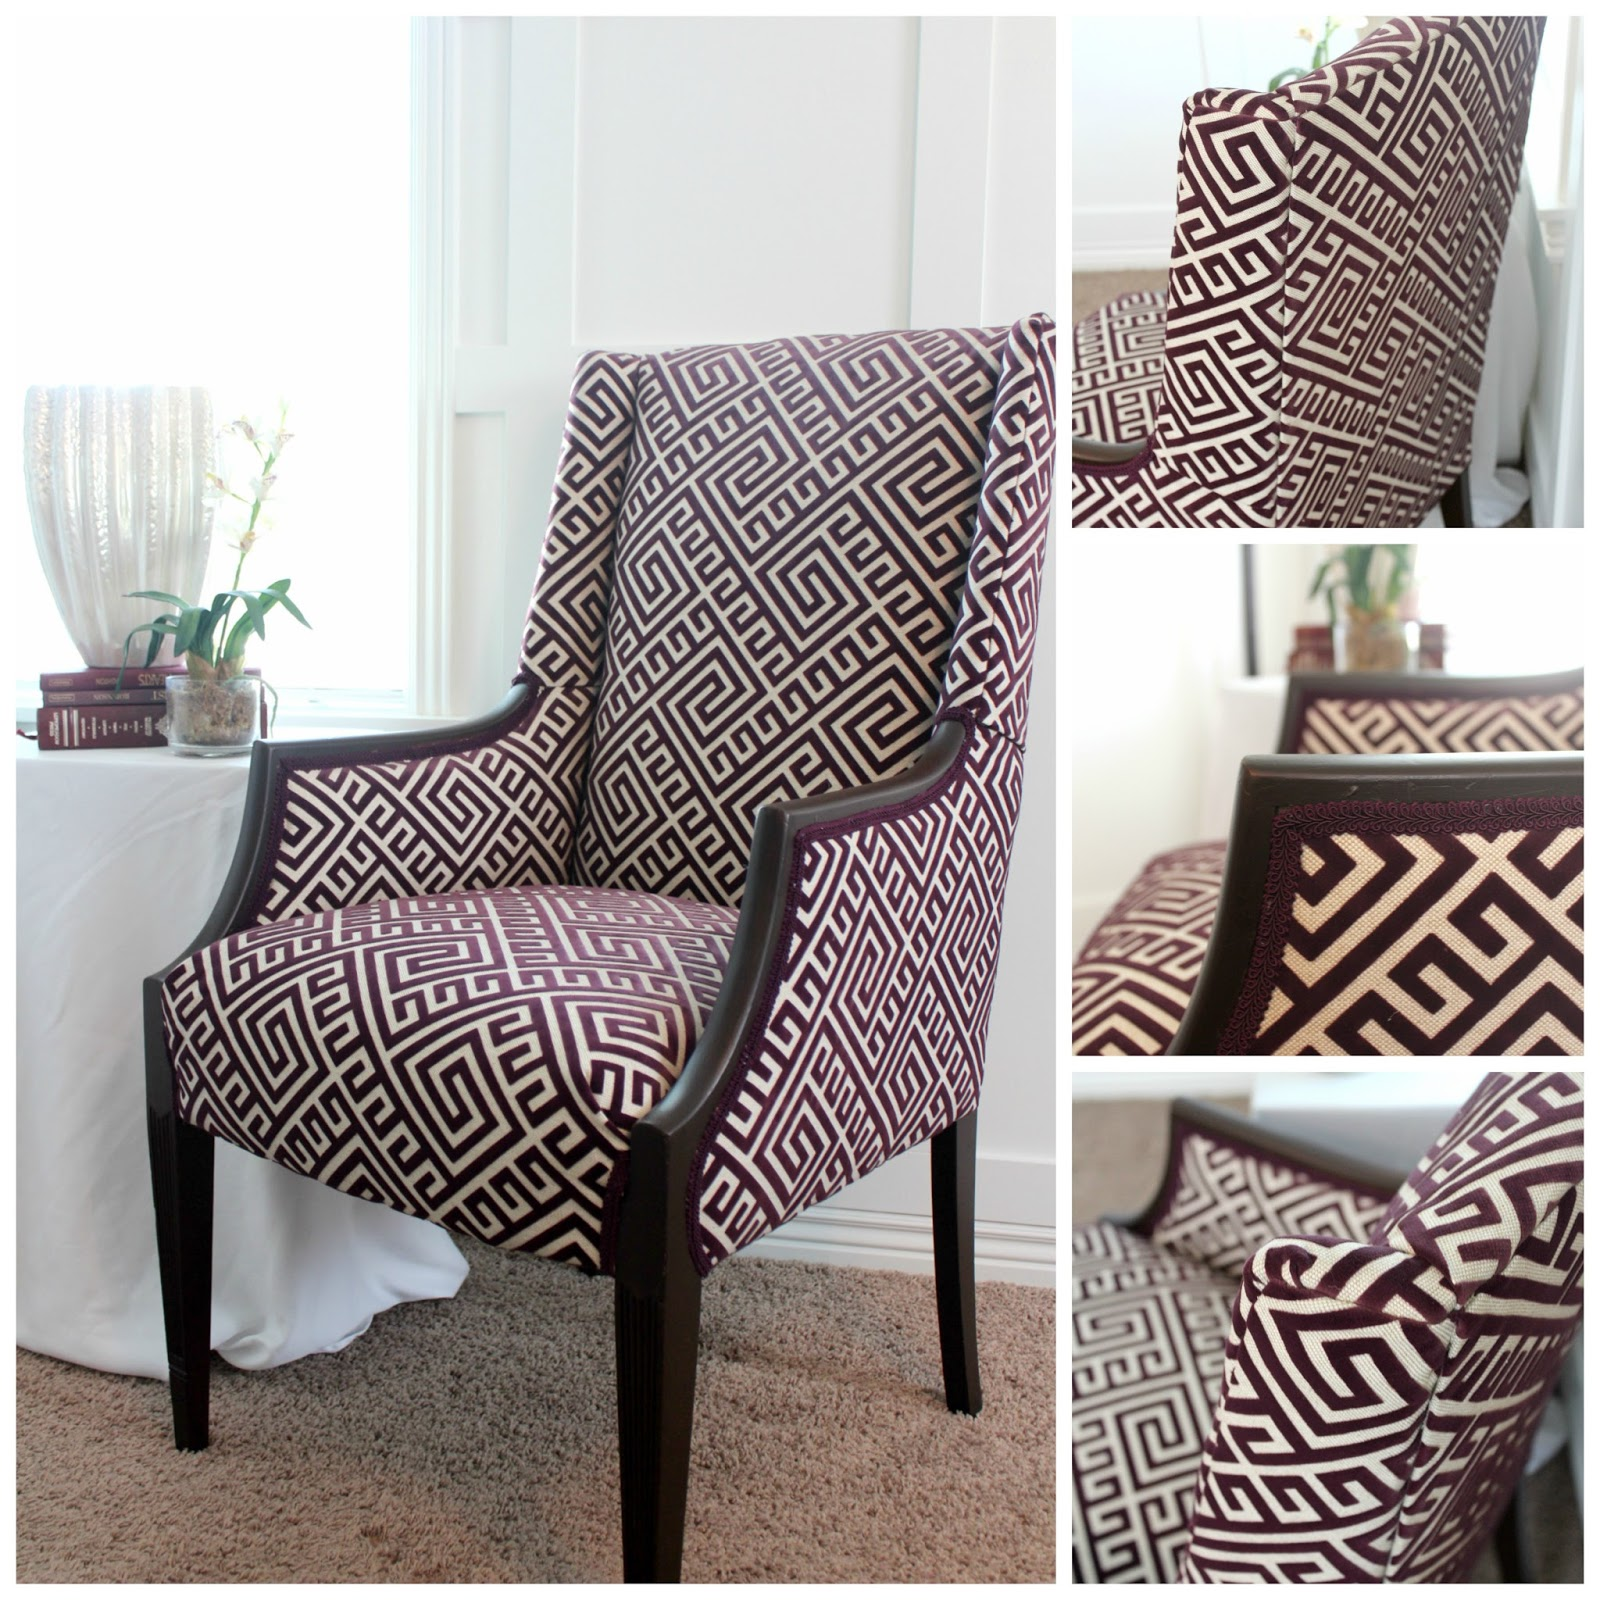 Stately Chair Covered In A Greek Key Material. Material Is Reddish Purple  Flocked Design And A Beige Linen Background.